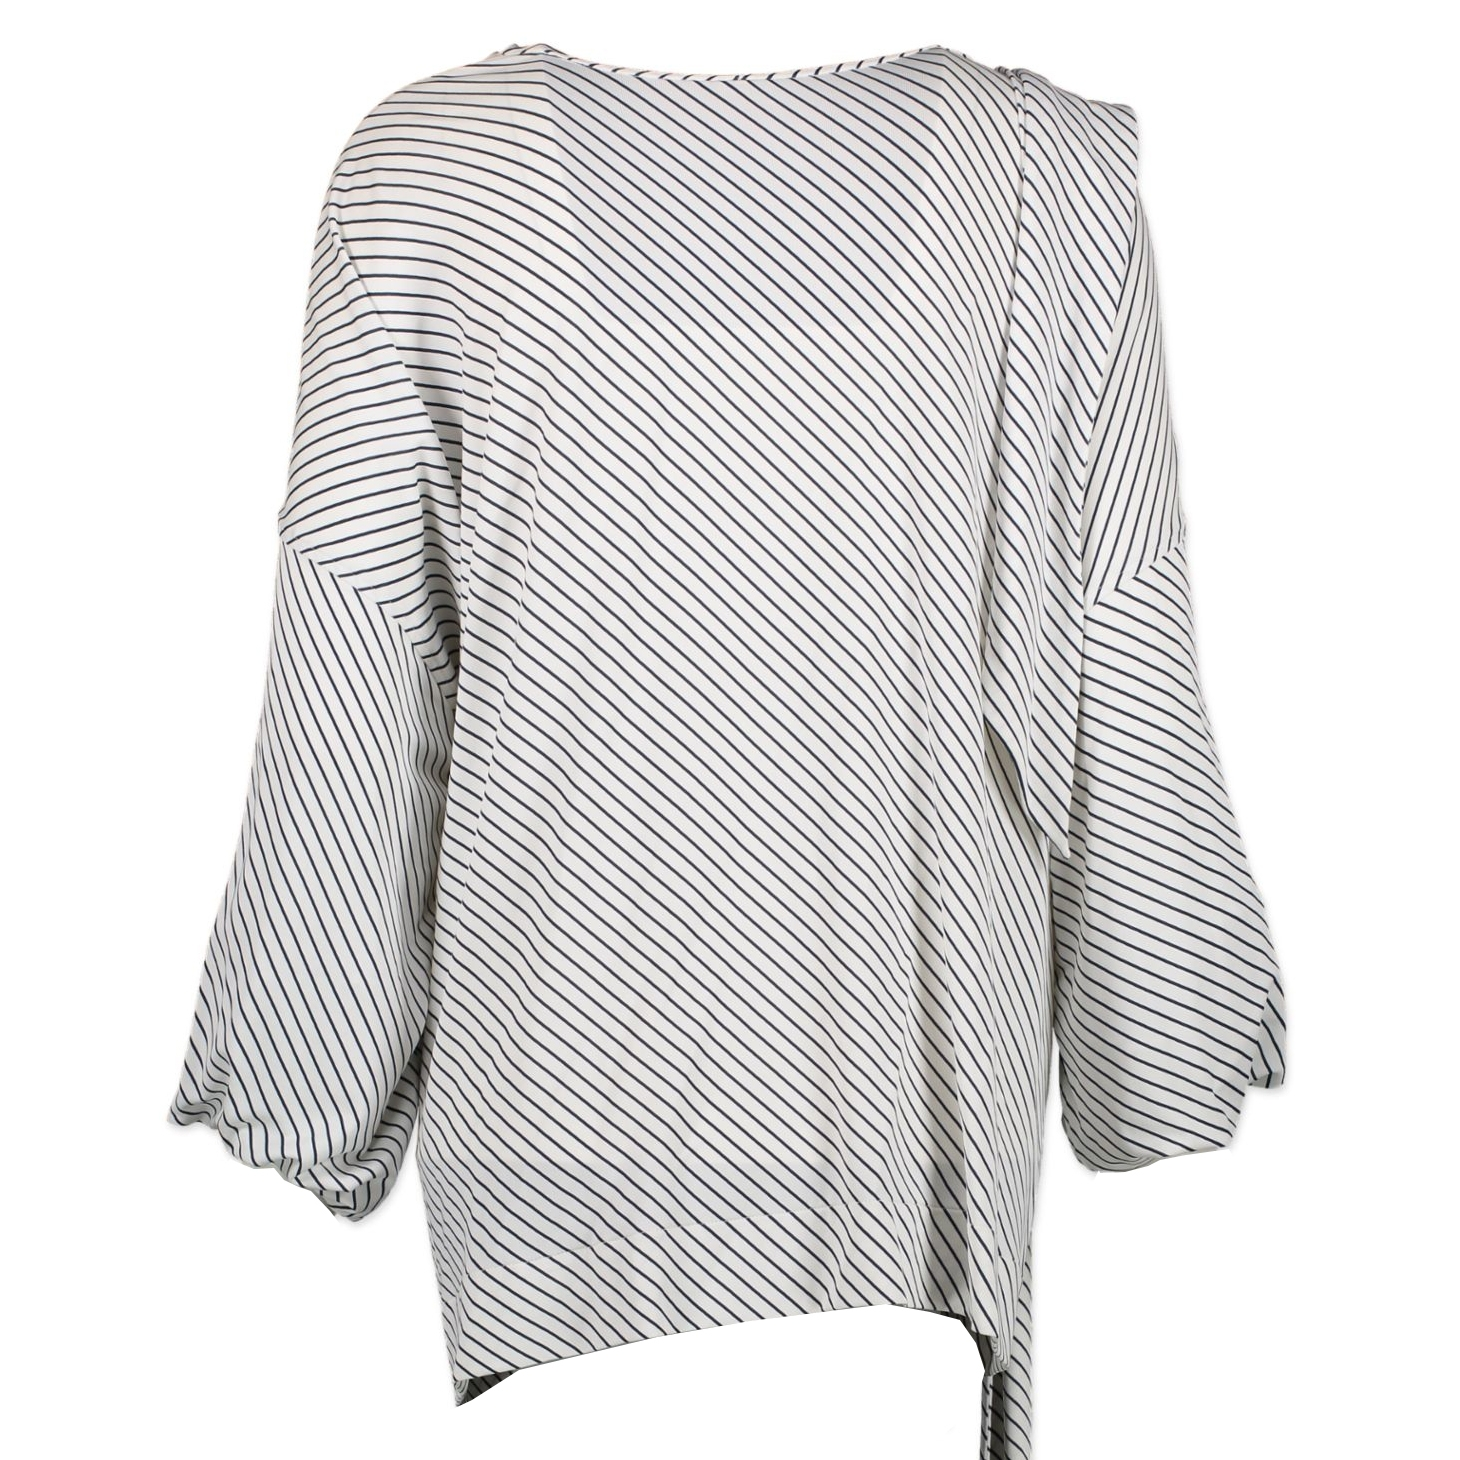 Balenciaga White Blue Striped Blouse - Size 34